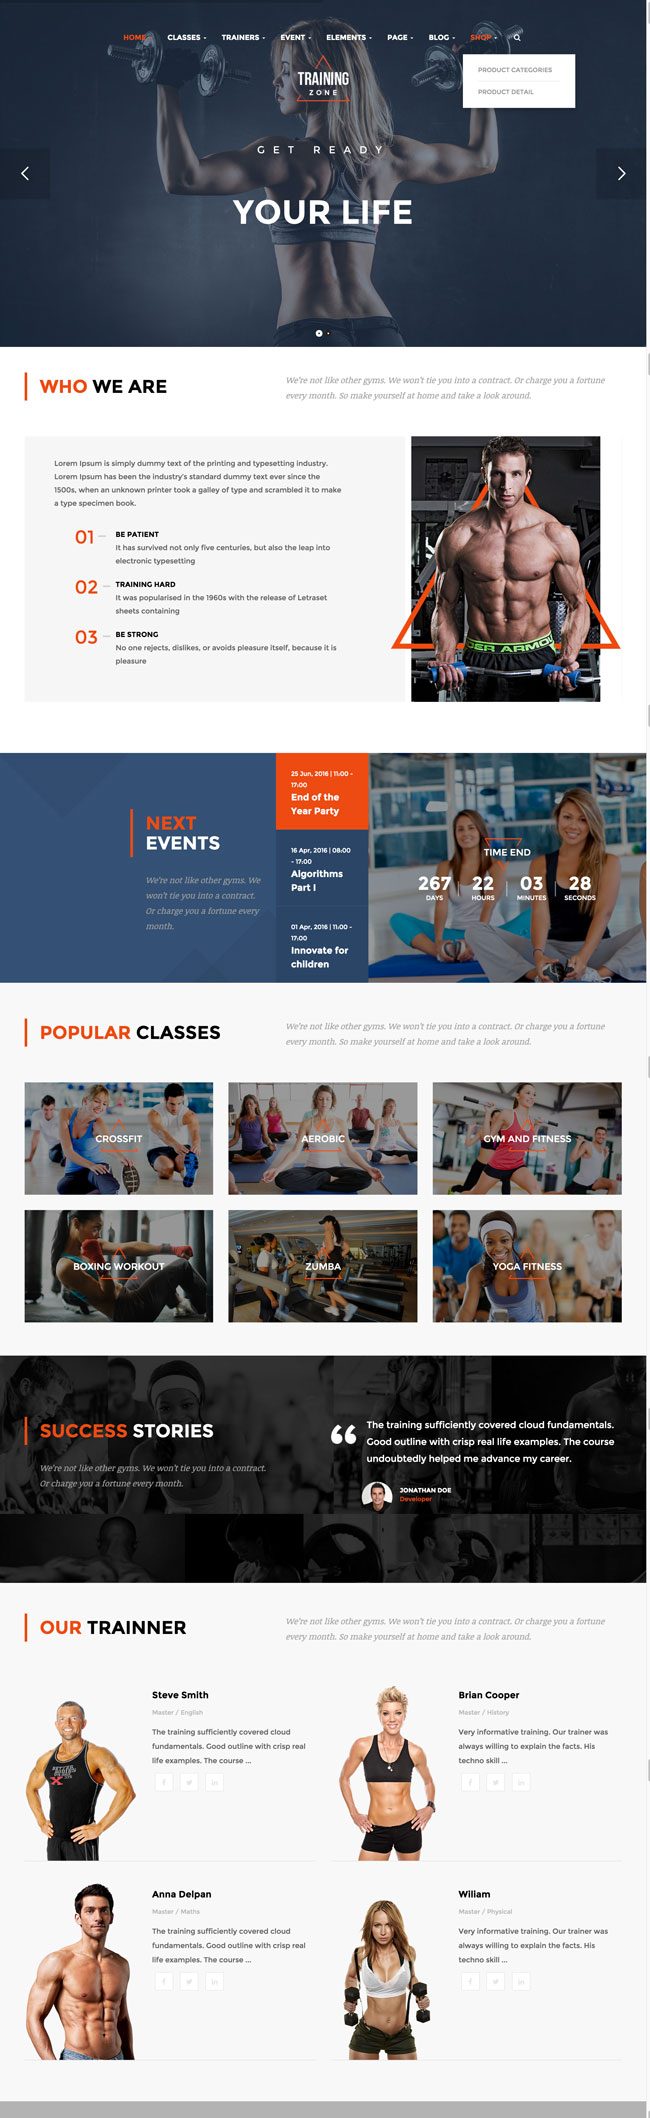 Training-Zone-Gym-Fitness-WordPress-Theme